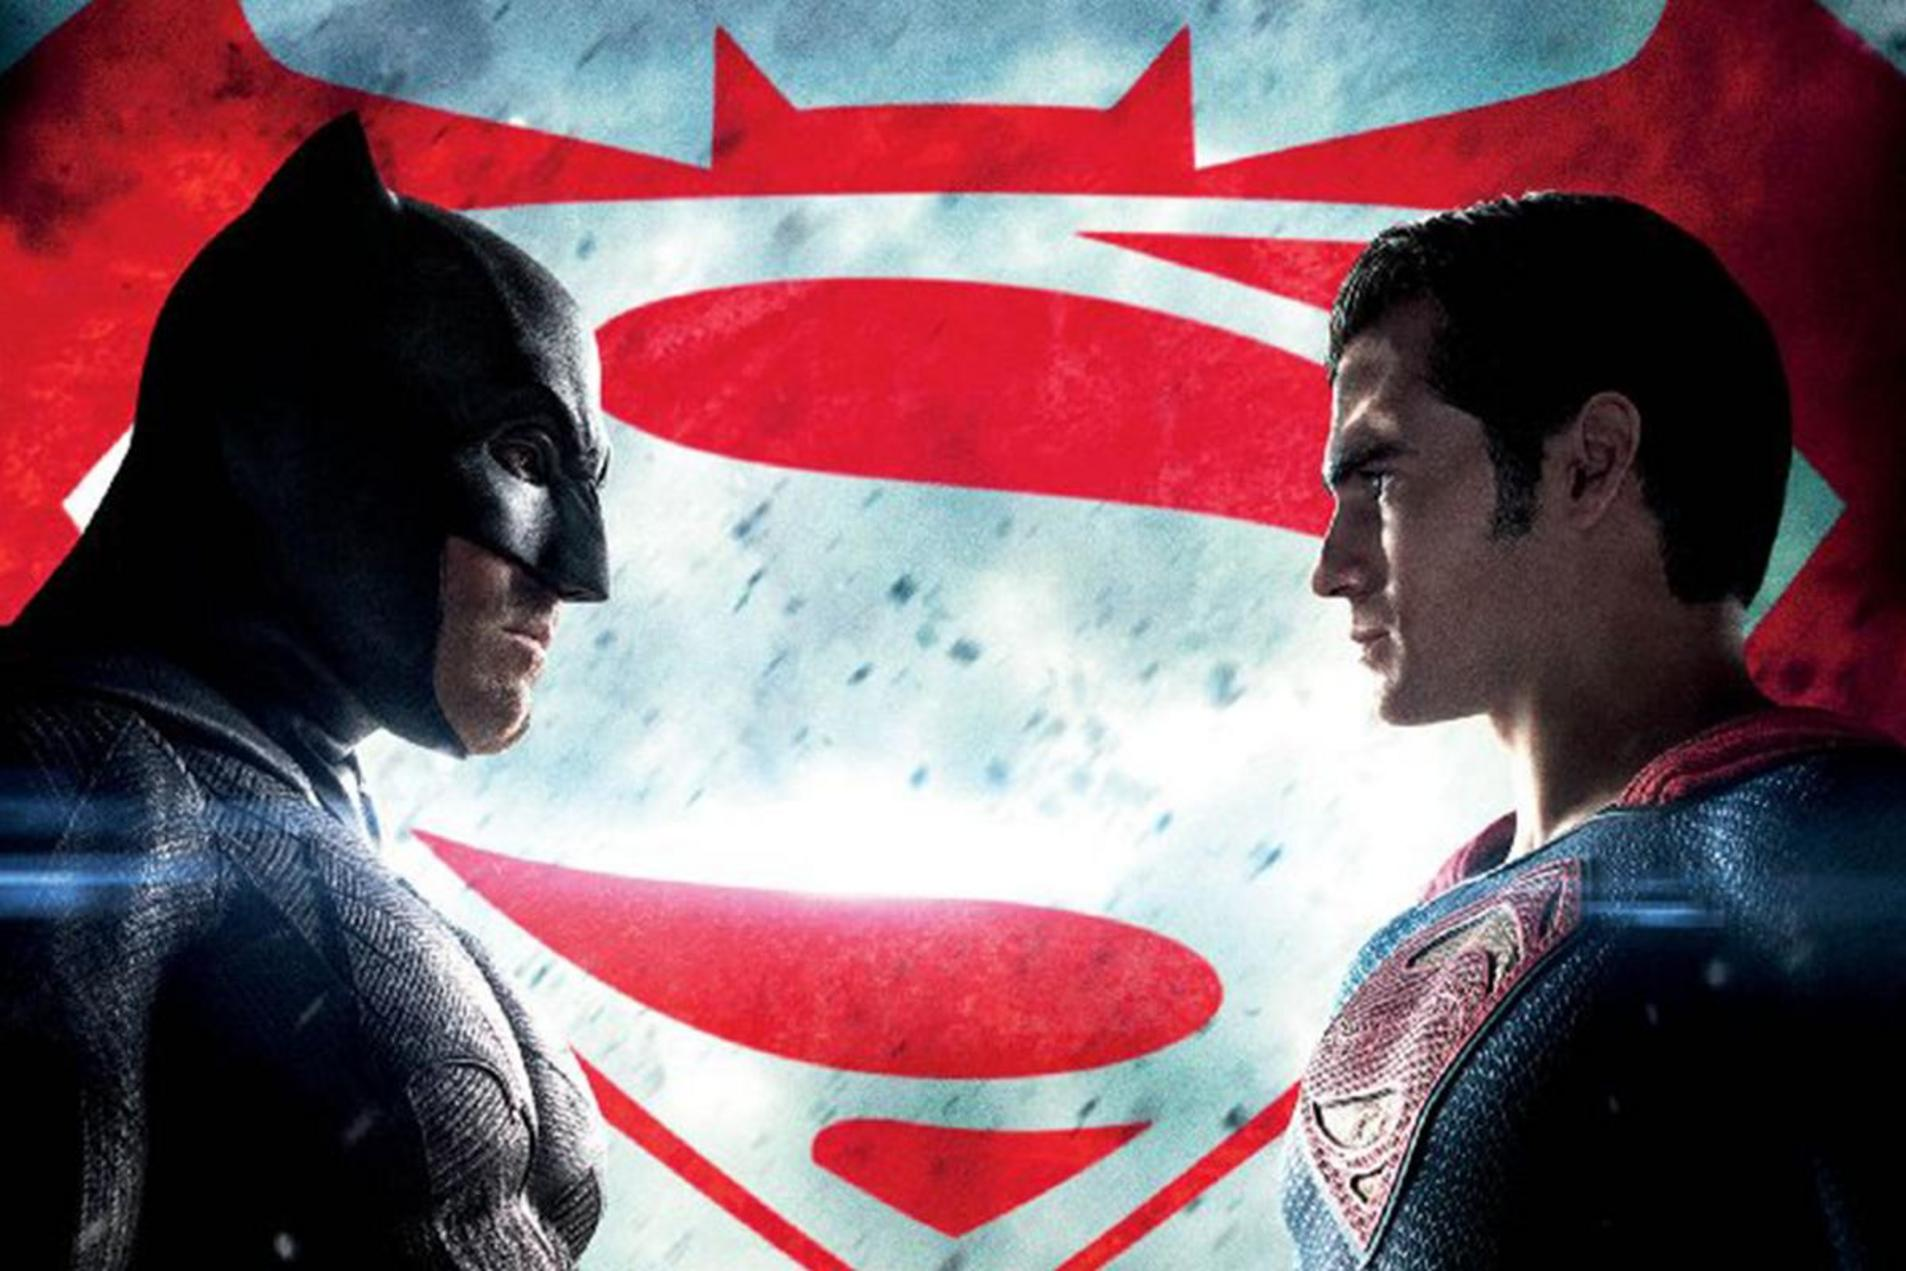 Who's the most iconic superhero: Batman or Superman? | The Tylt